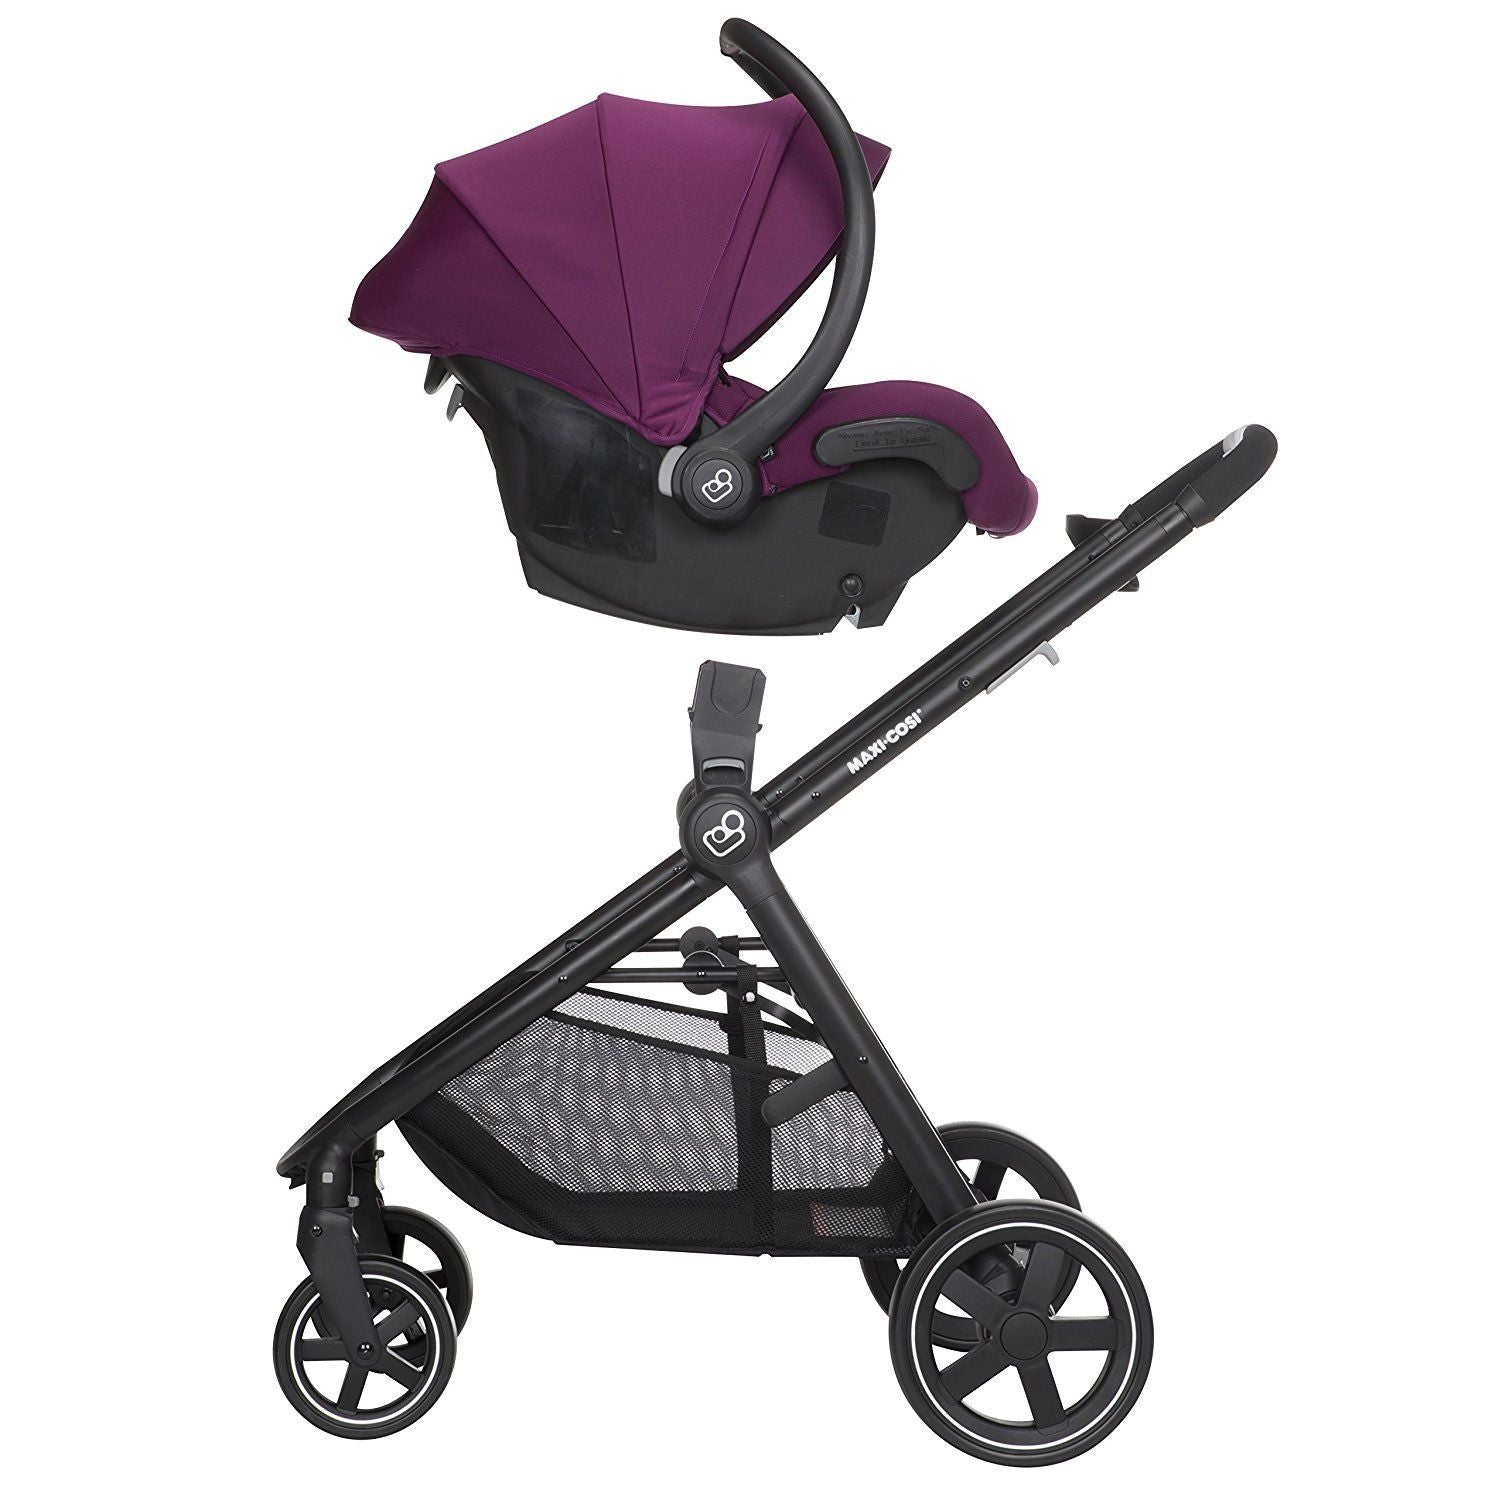 Maxi Cosi Zelia Travel System Violet Caspia- Stroller & Mico 30 Car Seat